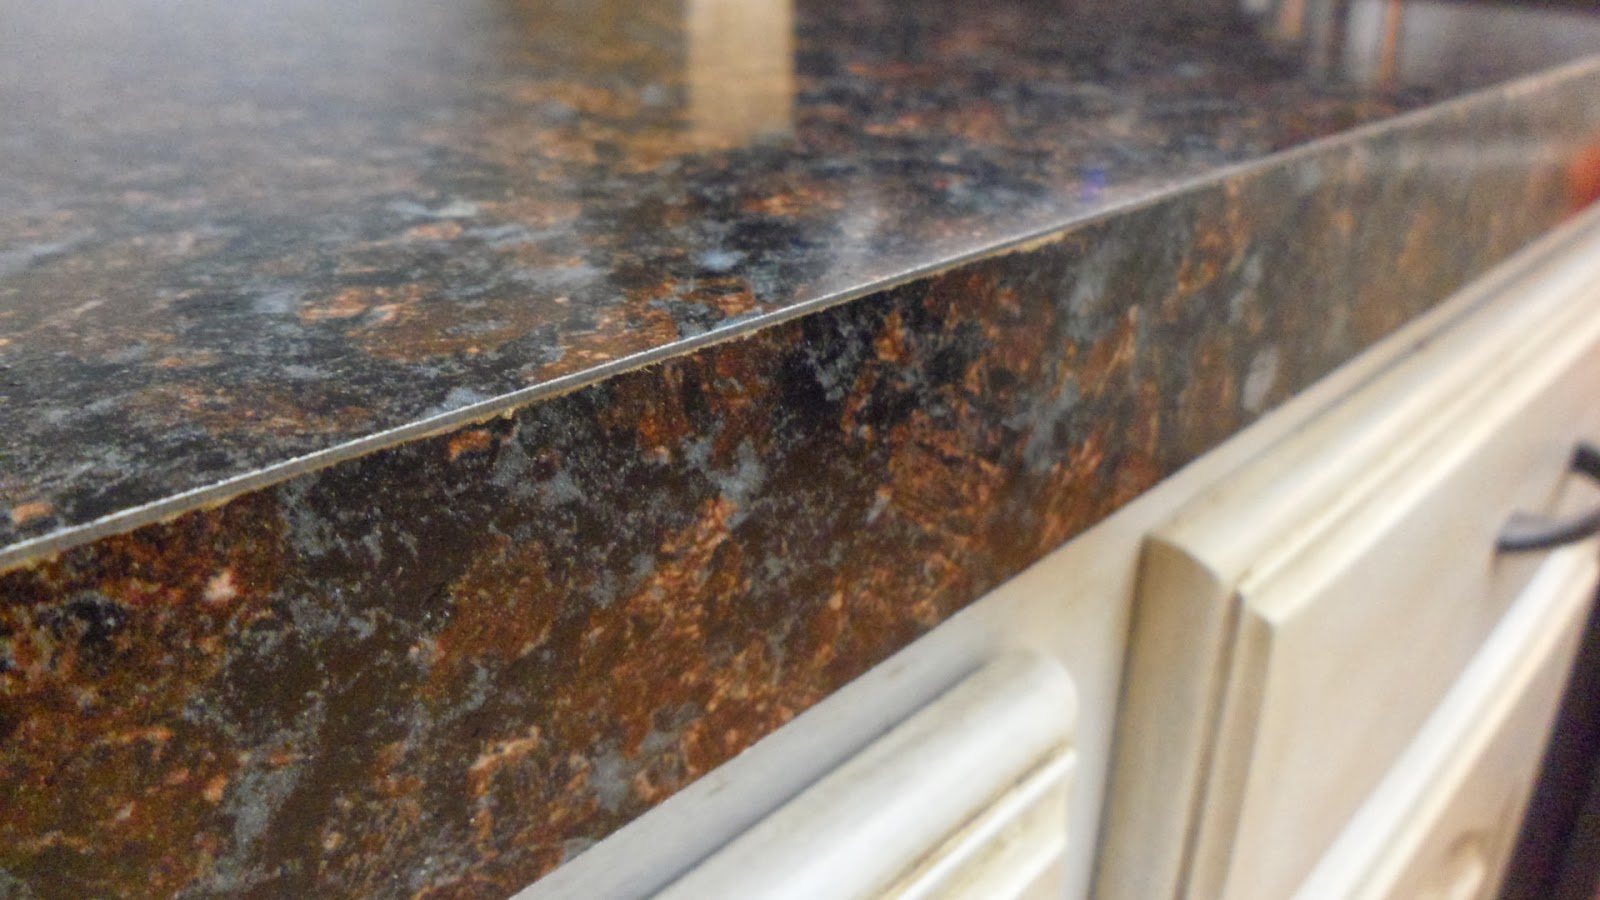 Countertop Filler : Laminate+Seam+Filler+for+Countertops The old laminate also had a large ...